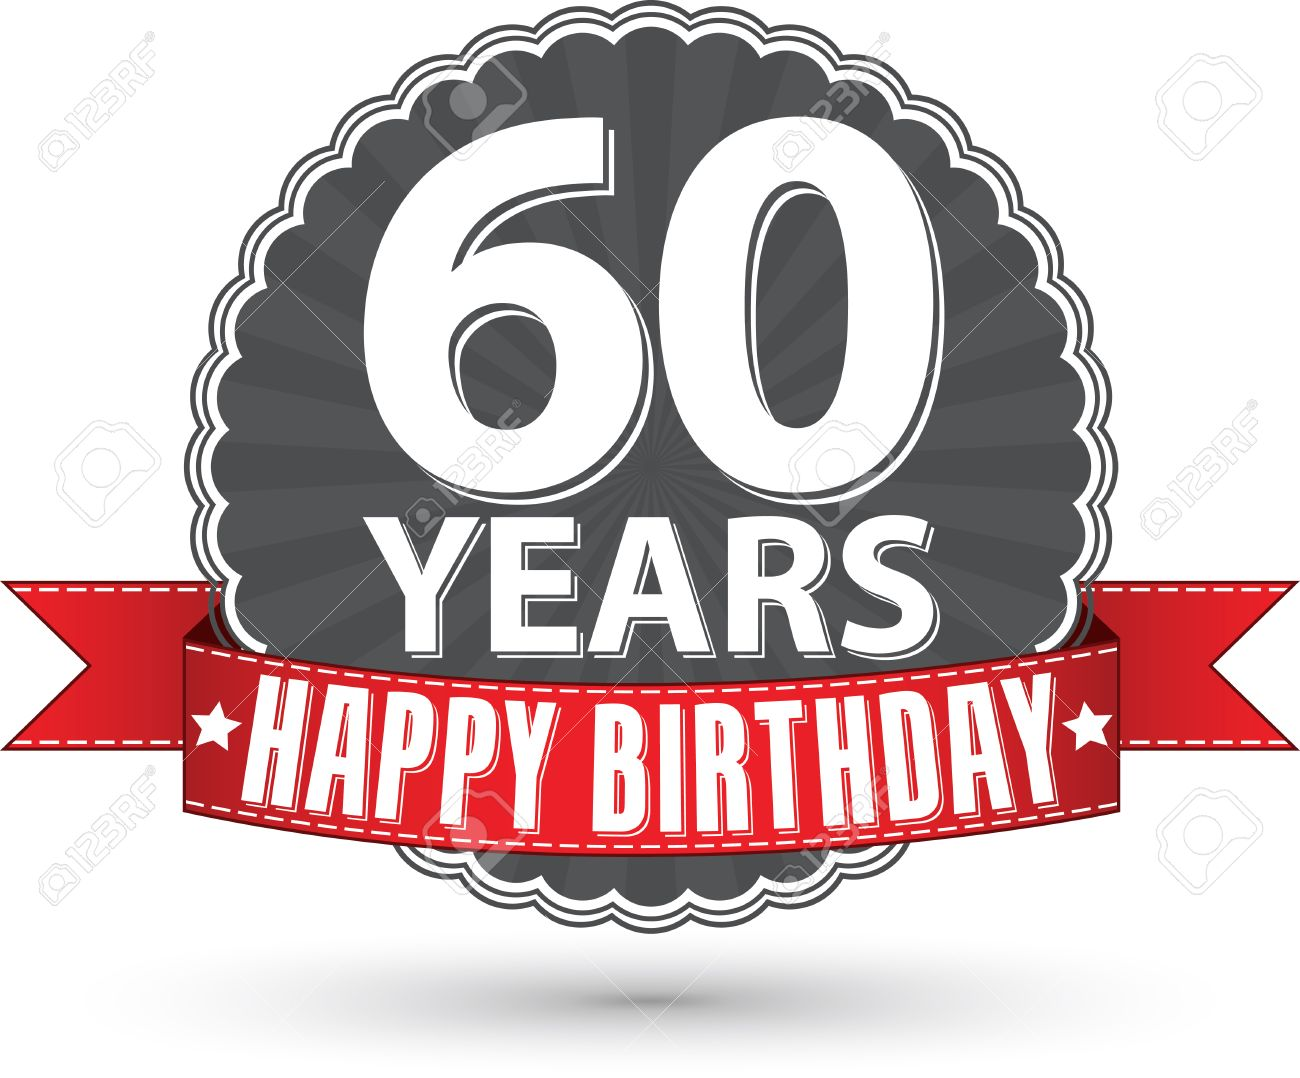 Happy birthday 60 years retro label with red ribbon Stock Vector - 36053663